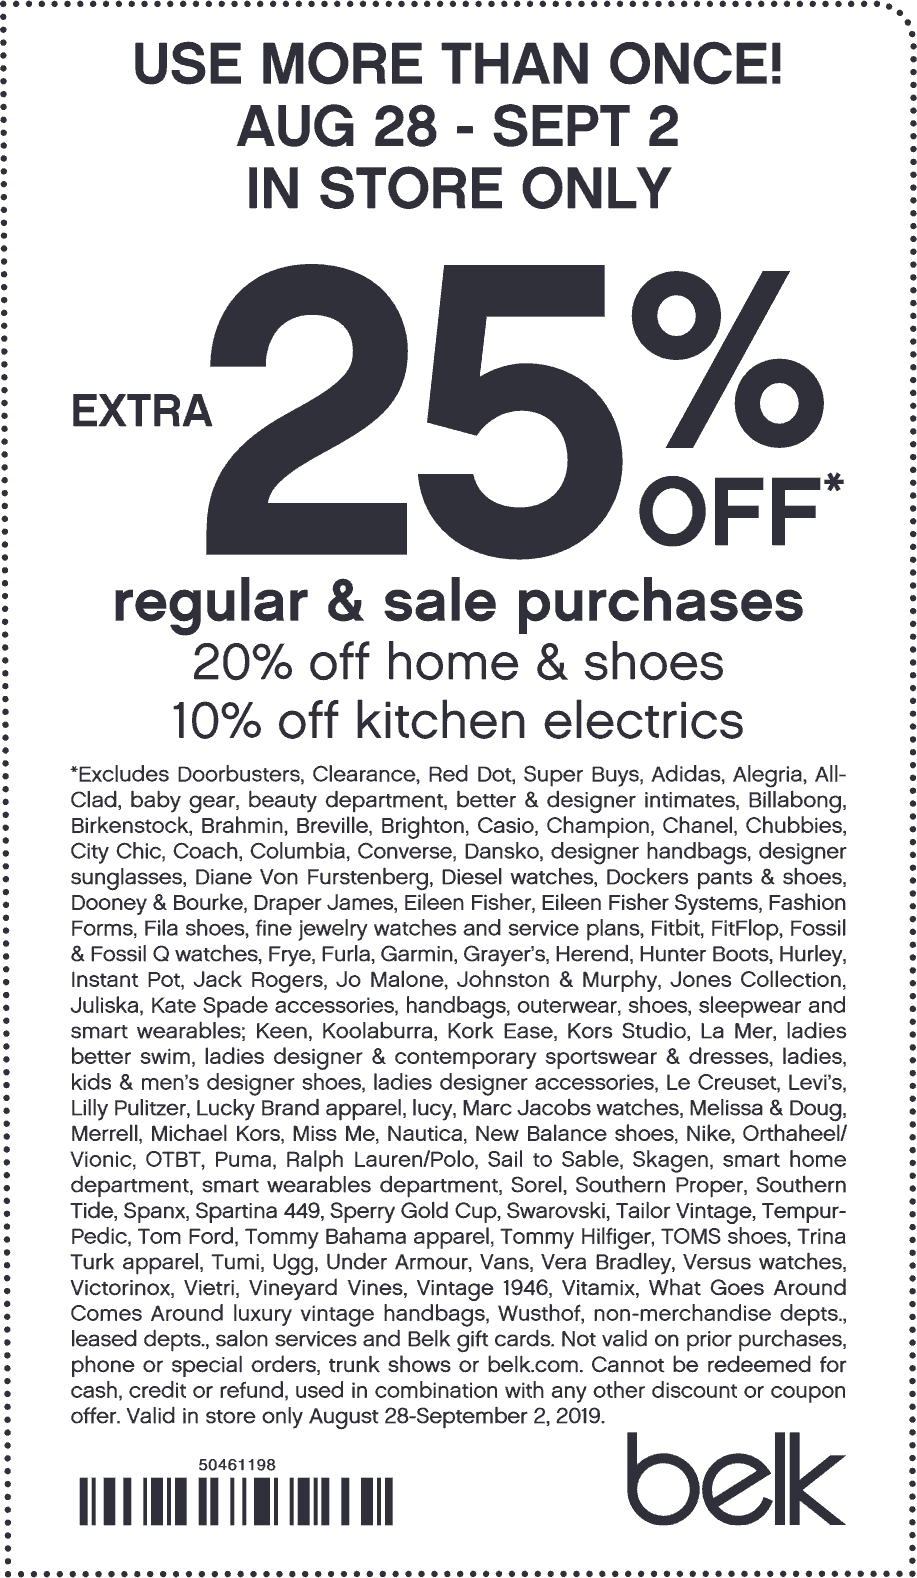 Belk Coupon November 2019 Extra 25% off at Belk, or online via promo code LABORDAYSAVE